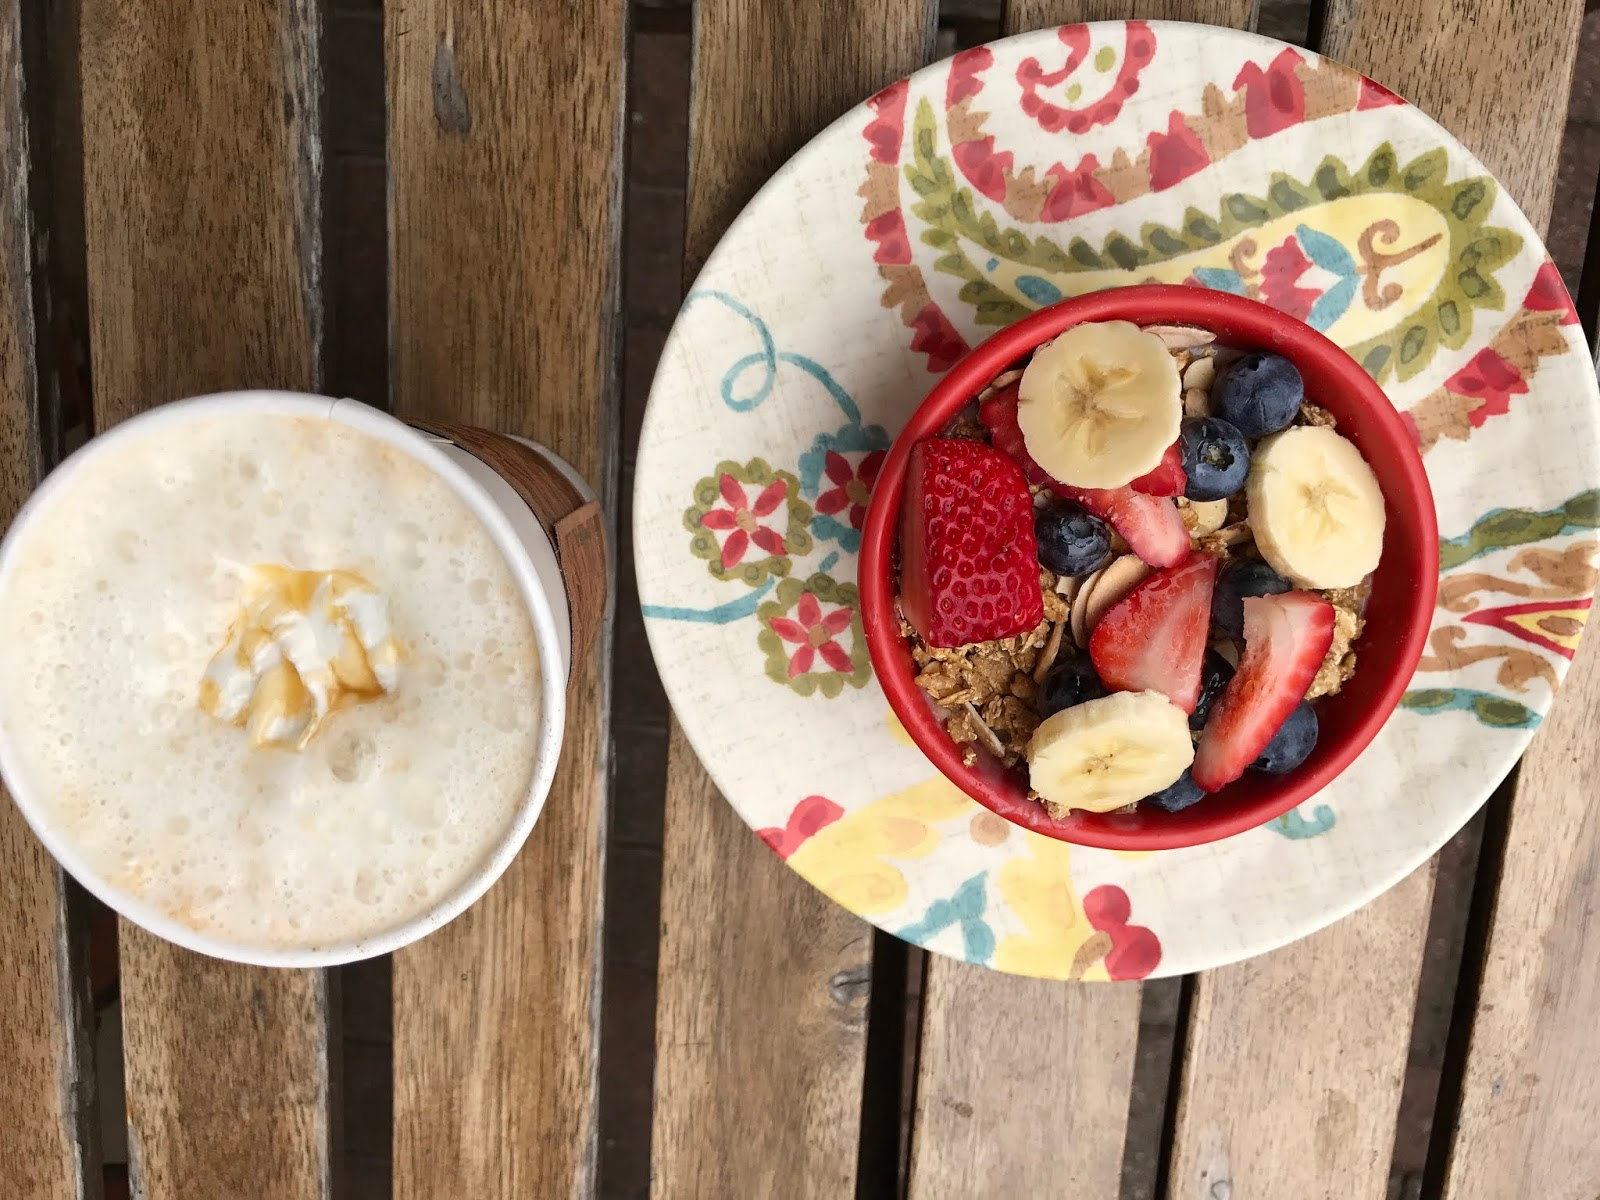 Image: Oatmeal and coffee on table.